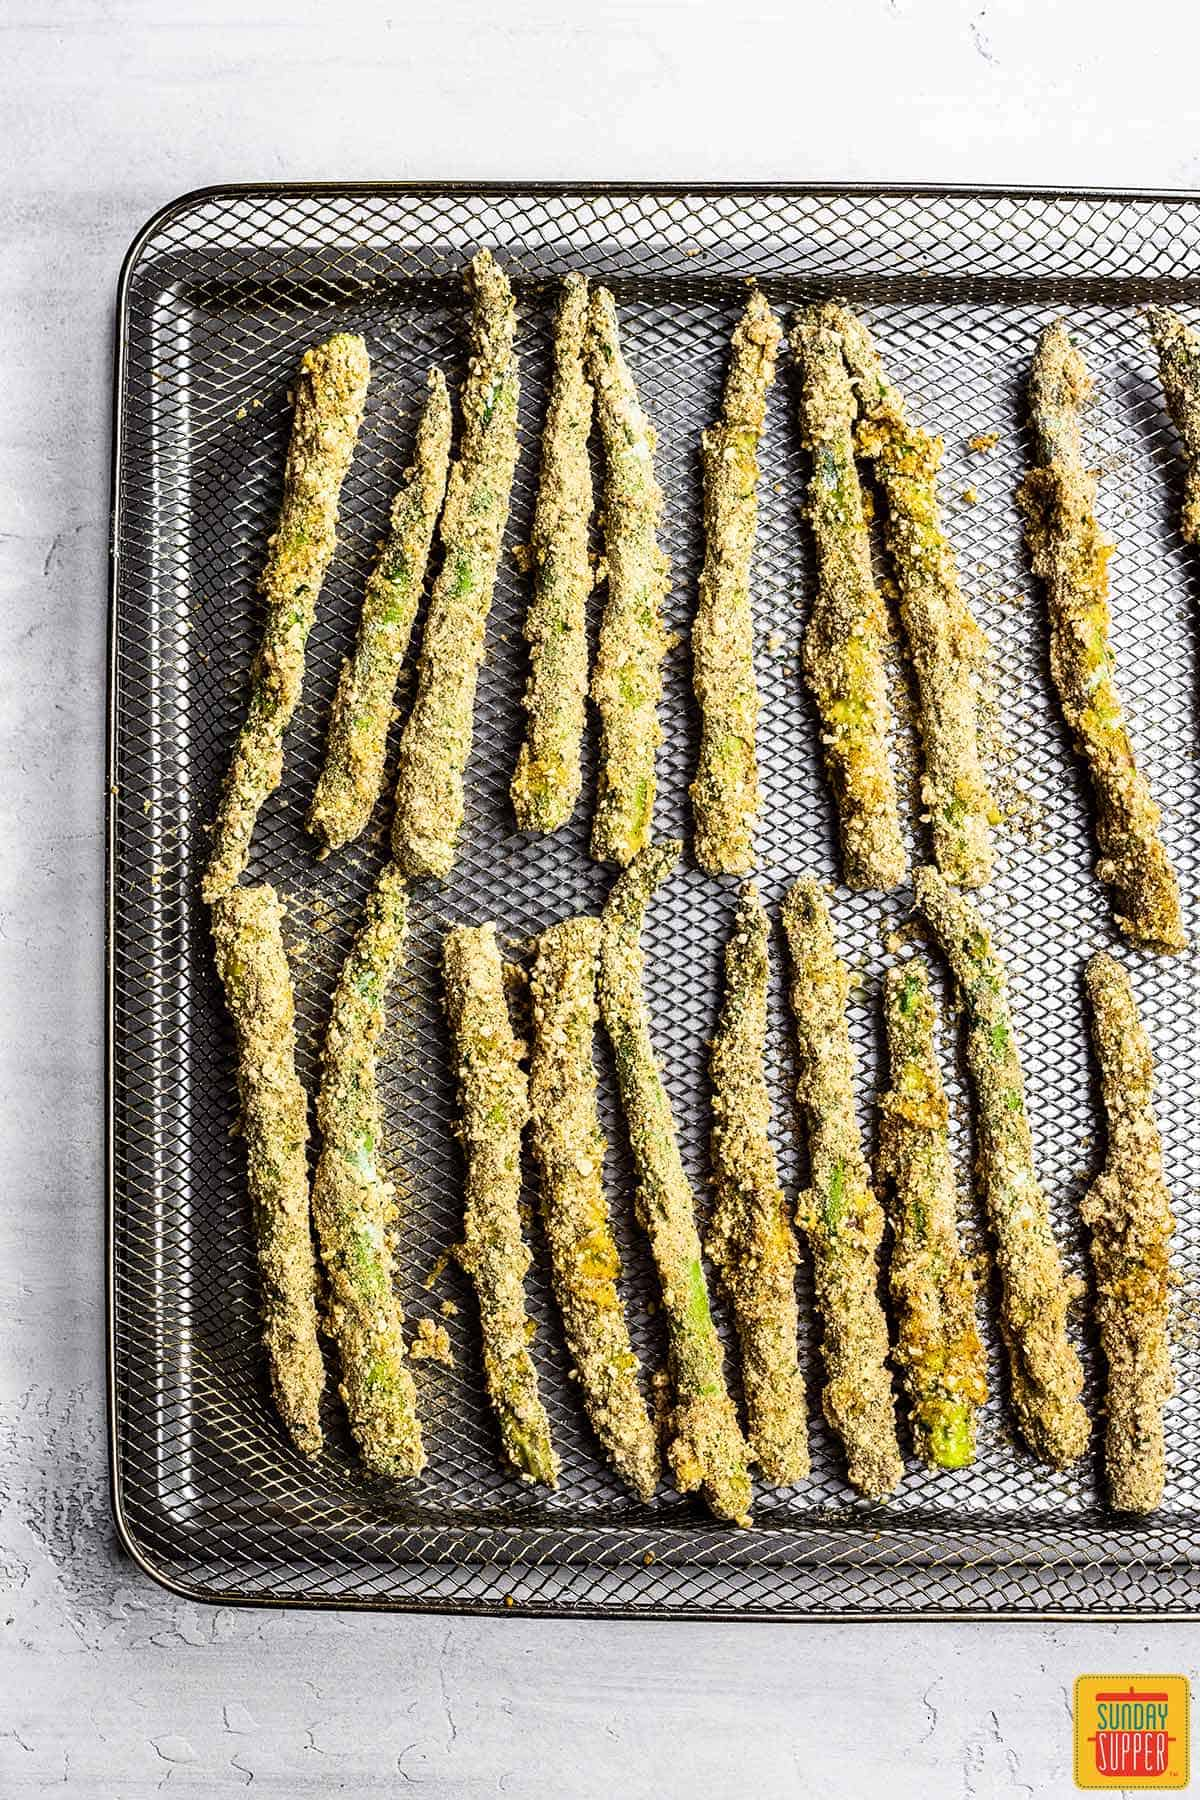 Placing asparagus fries on air fryer rack